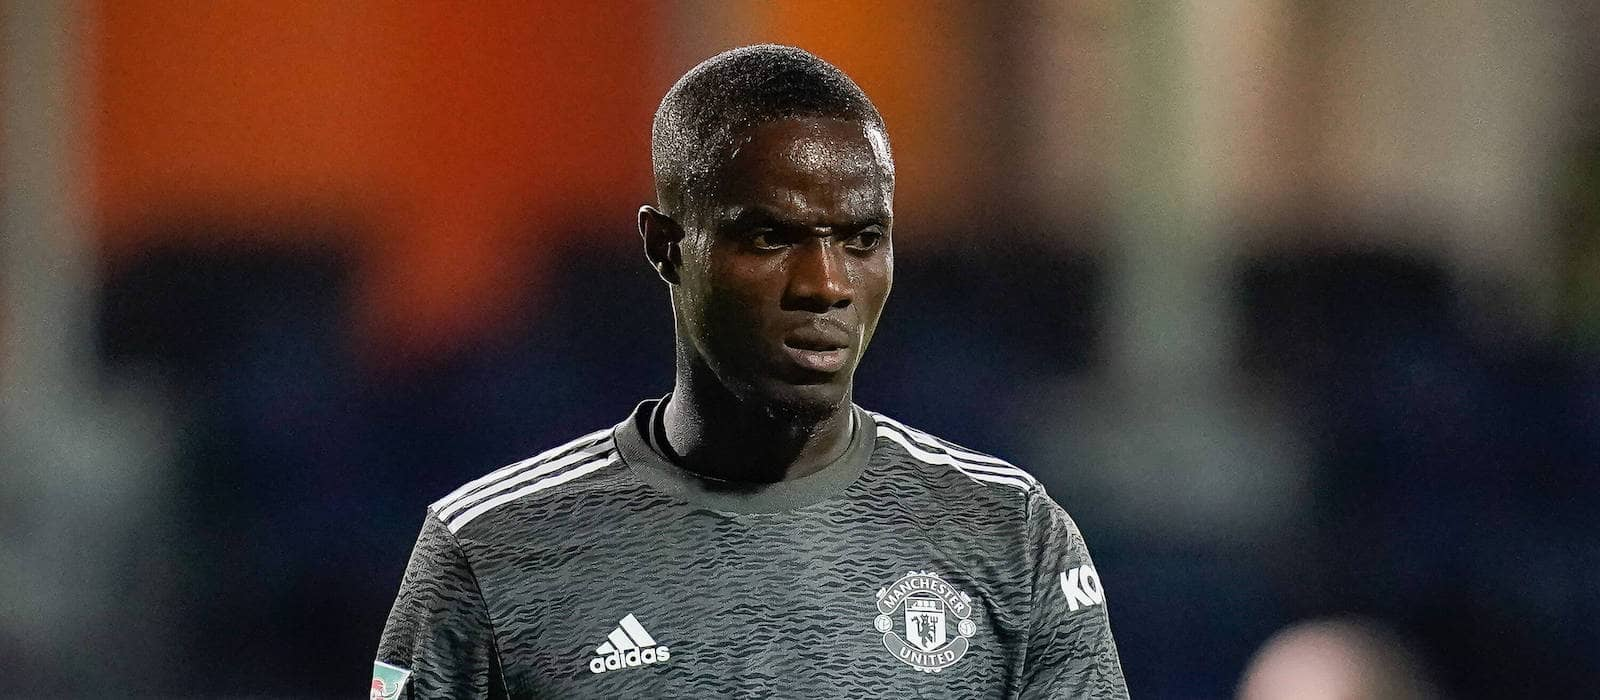 Ole Gunnar Solskjaer hints that Eric Bailly is preferred to Victor Lindelof